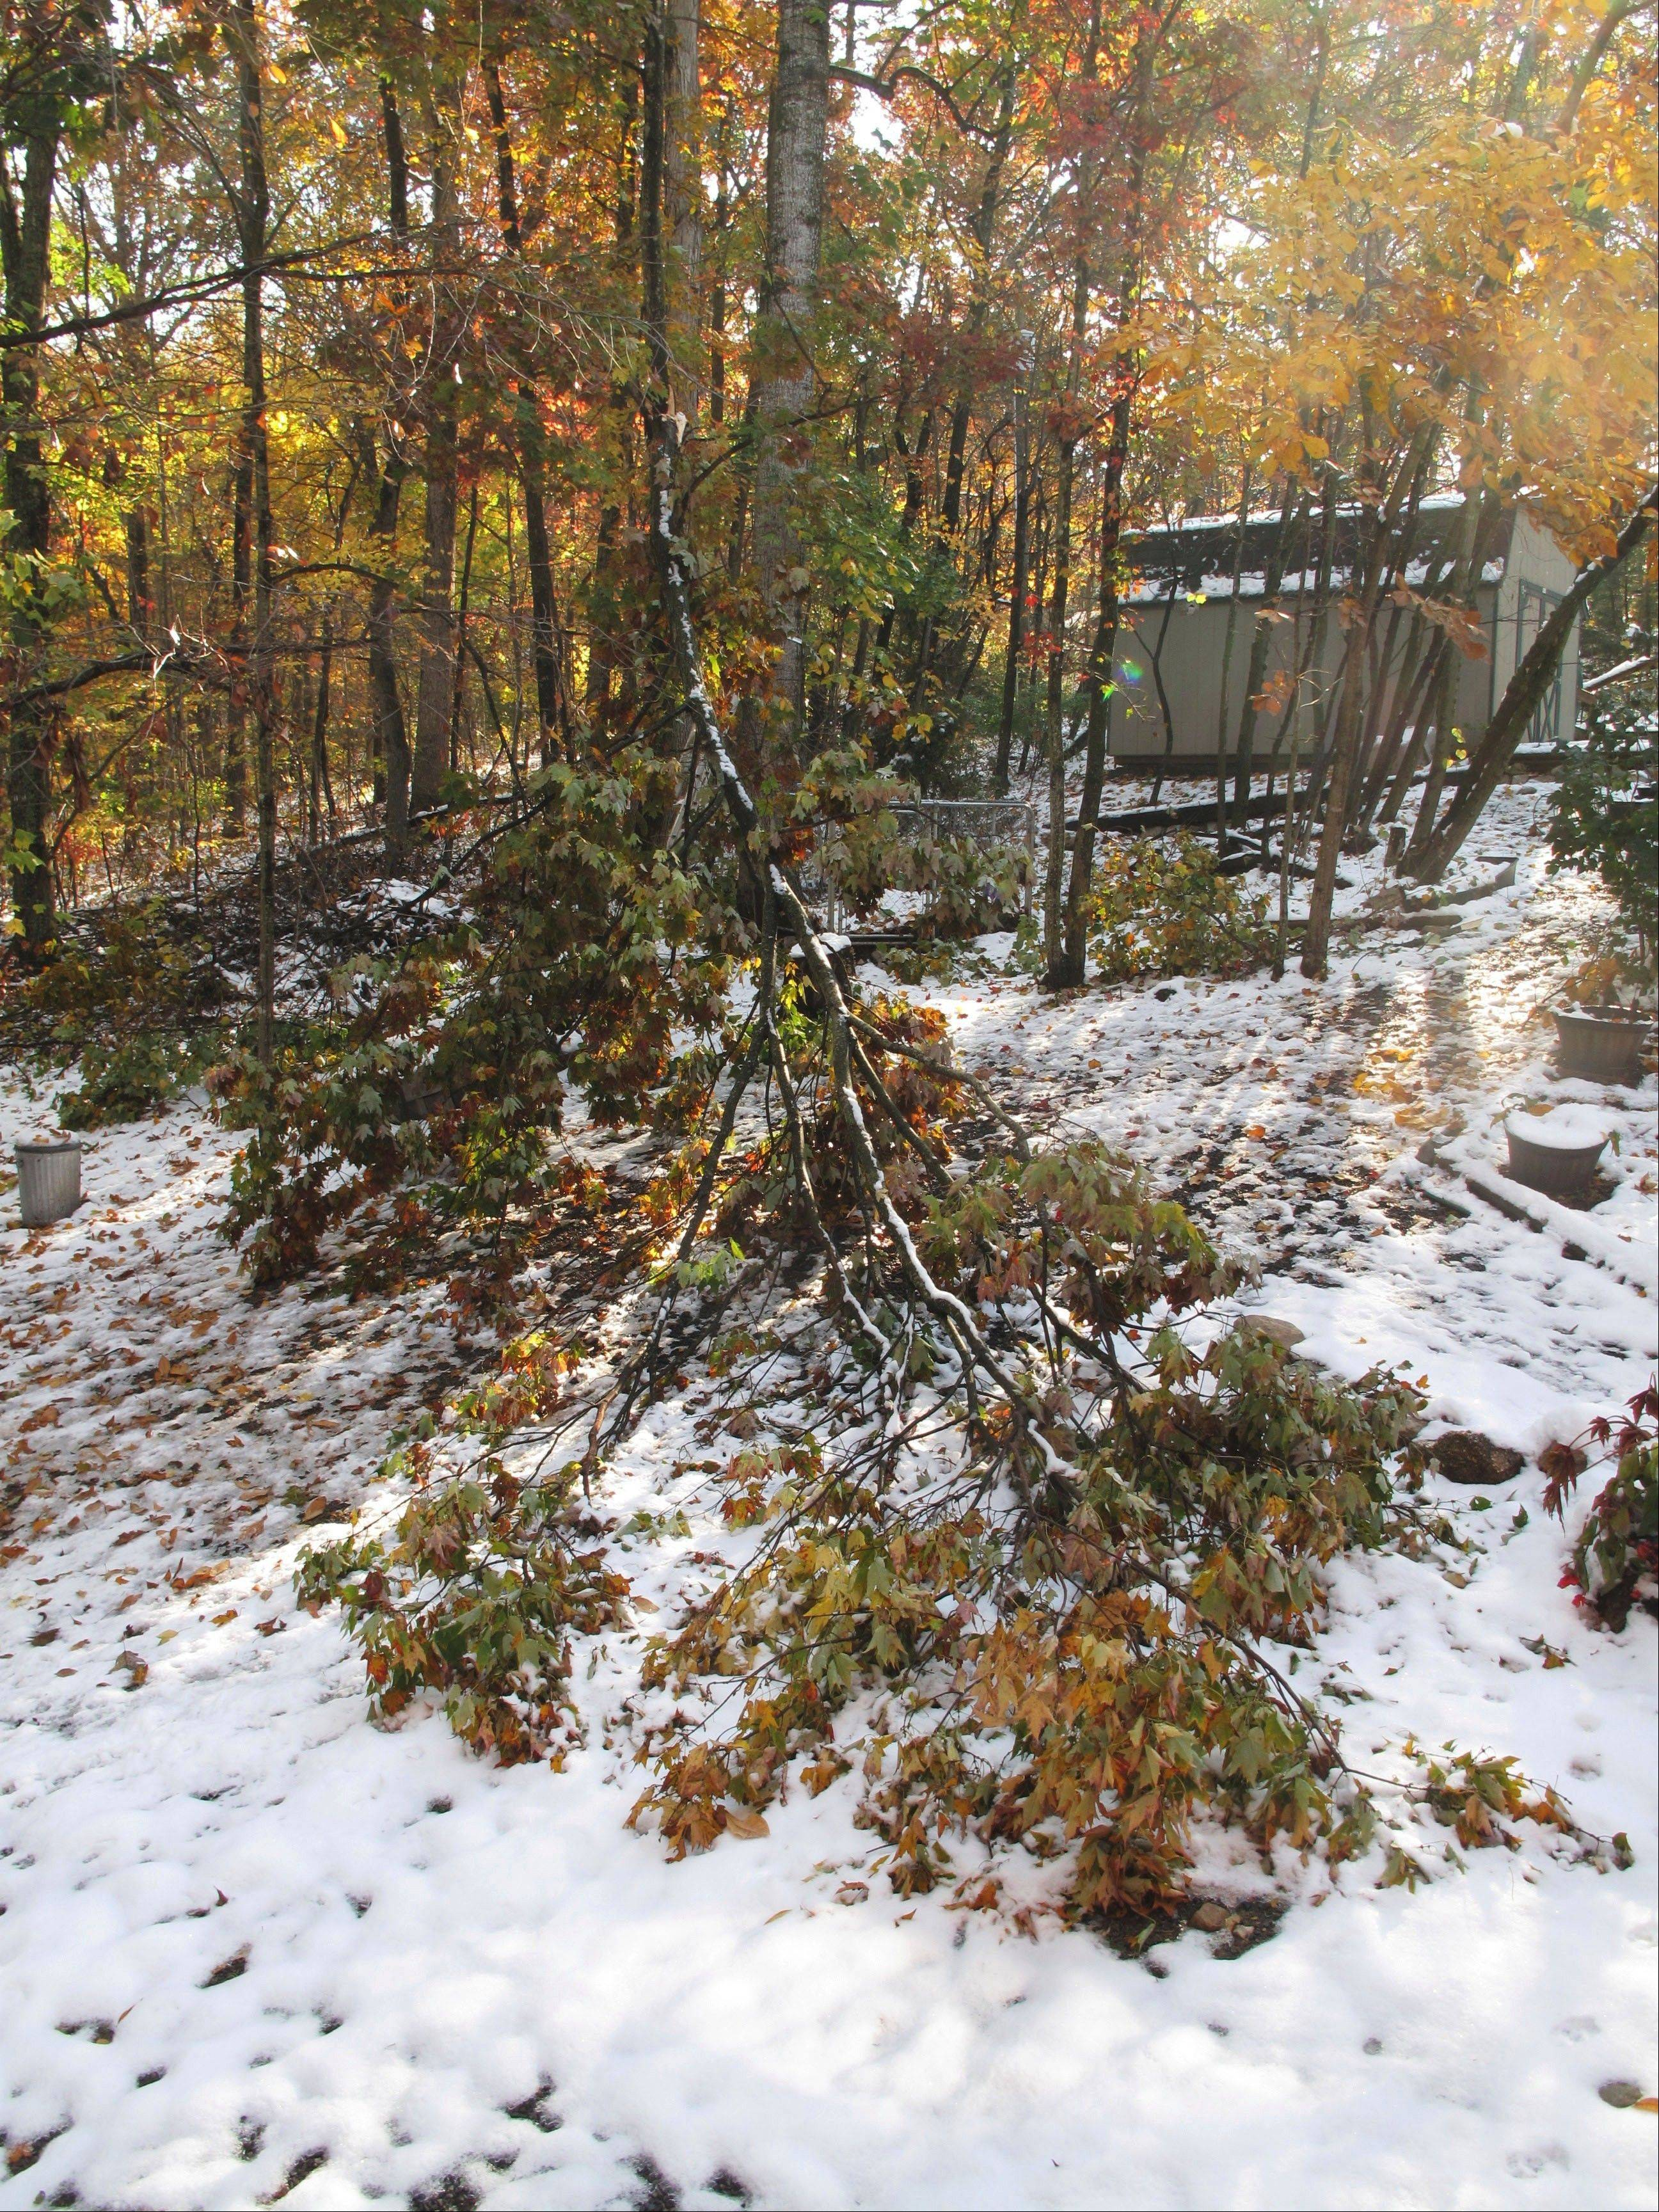 Damaged trees from a storm that packed wet, heavy snow on portions of Virginia�s Shenandoah Valley. This tree couldn�t be saved and had to be removed.